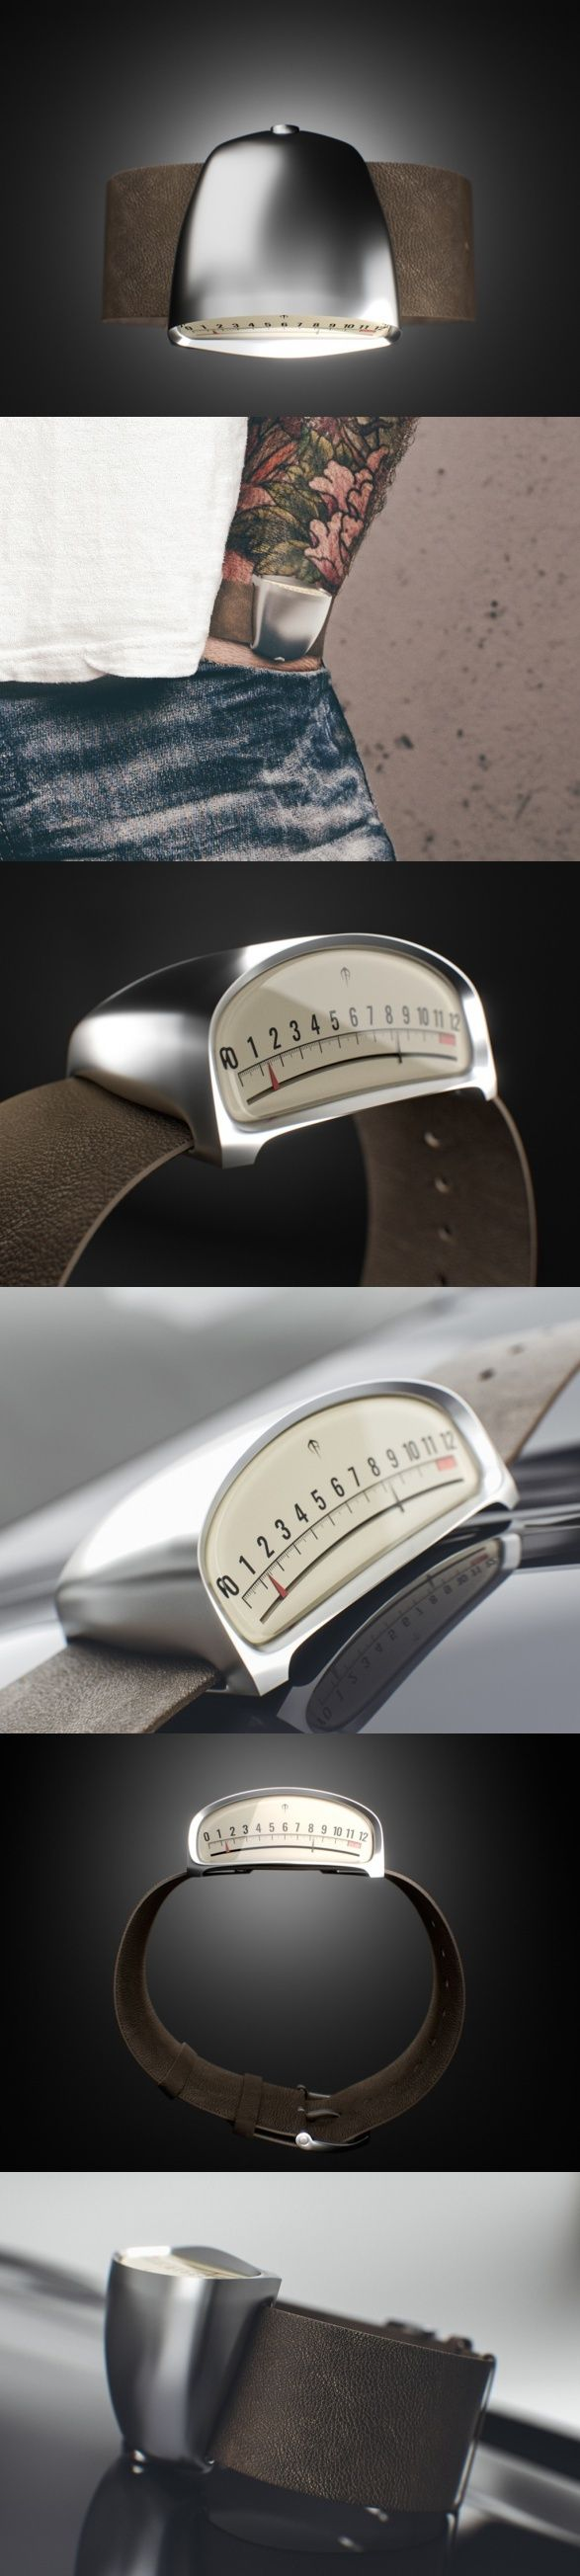 The Drive watch. The design takes inspiration from vintage models from a time when cars were considered not just transportation but art.